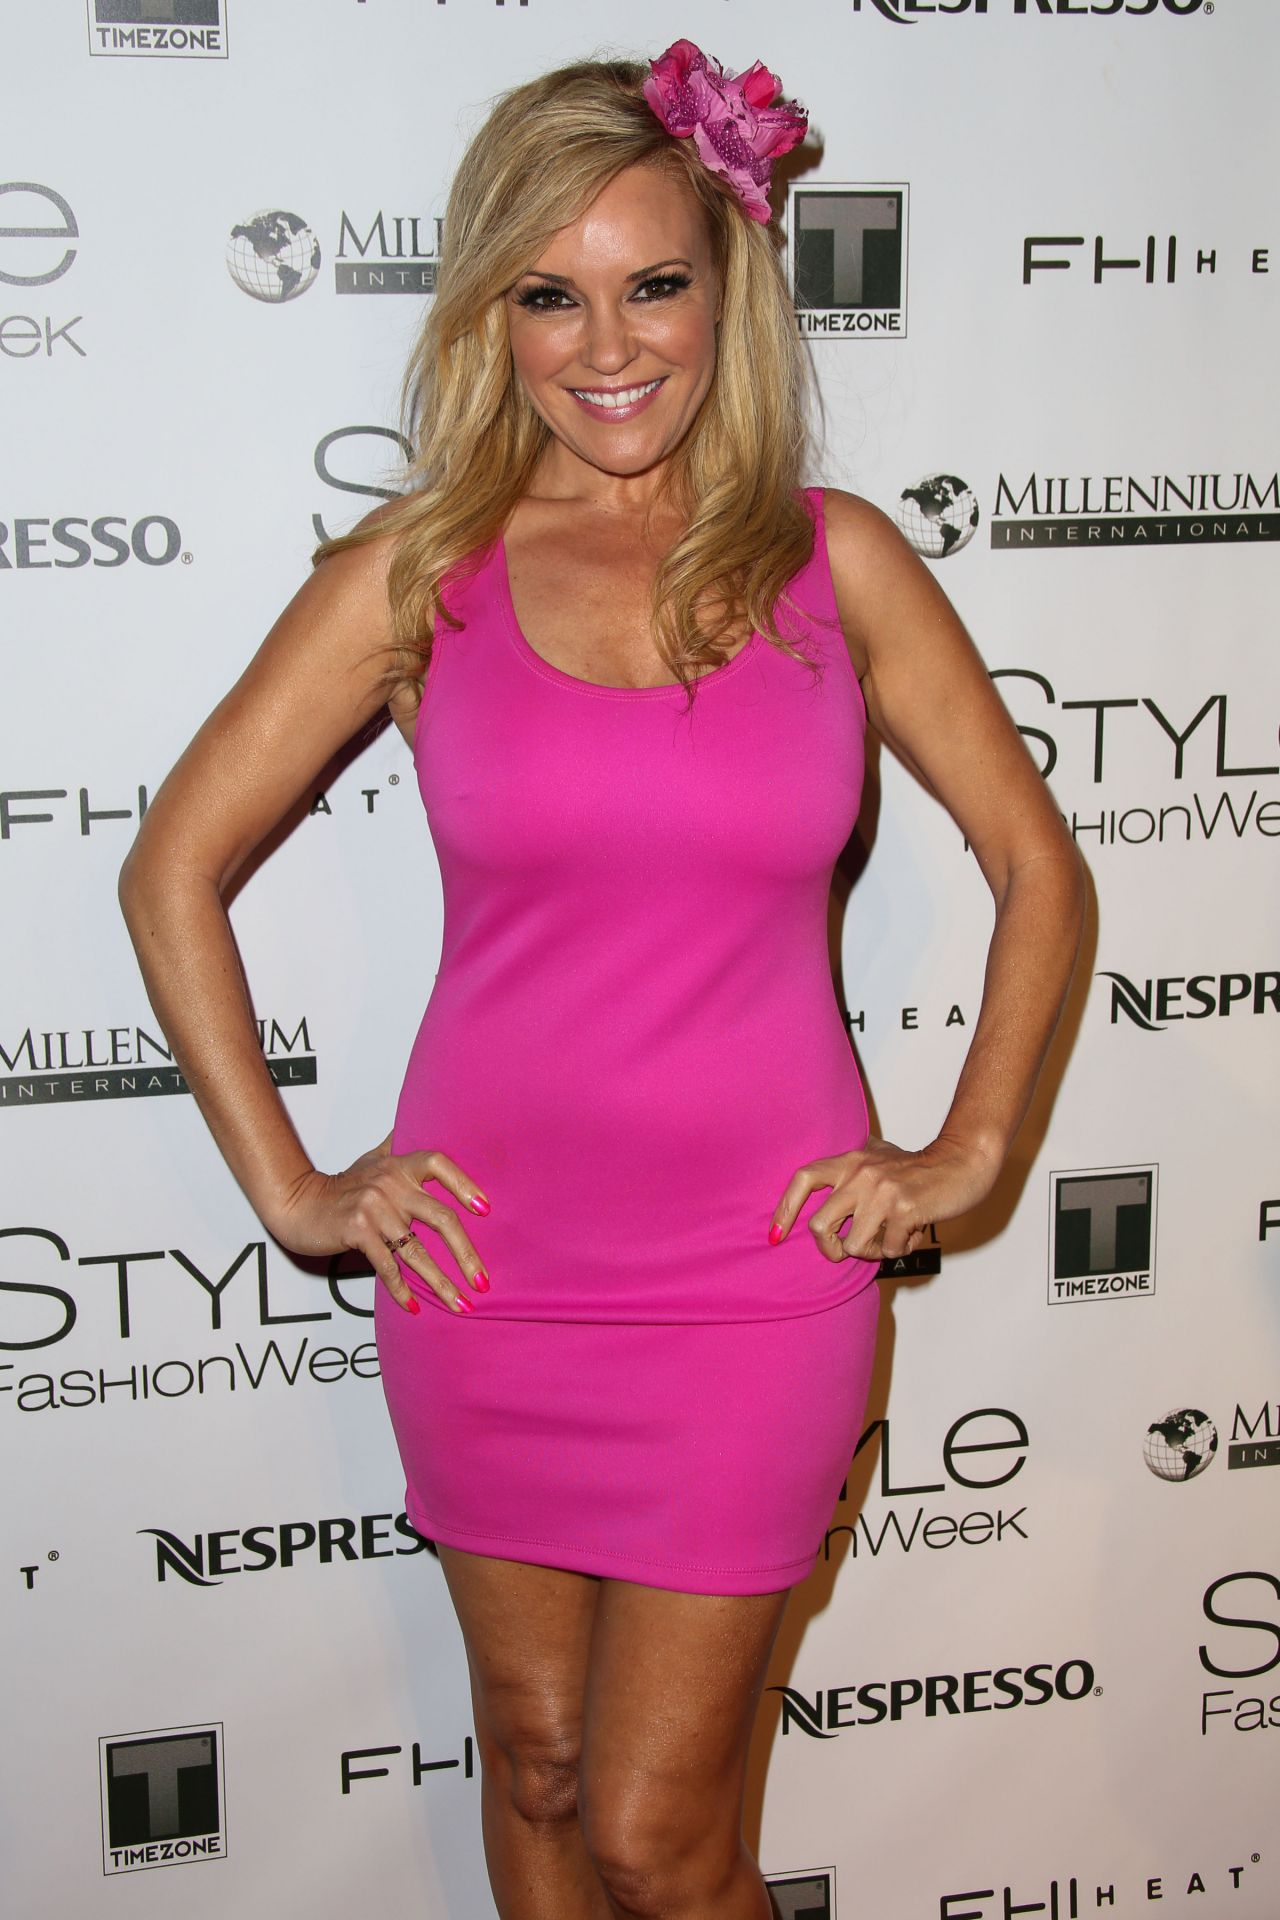 Bridget Marquardt Style Fashion Week At L A Live Event Deck